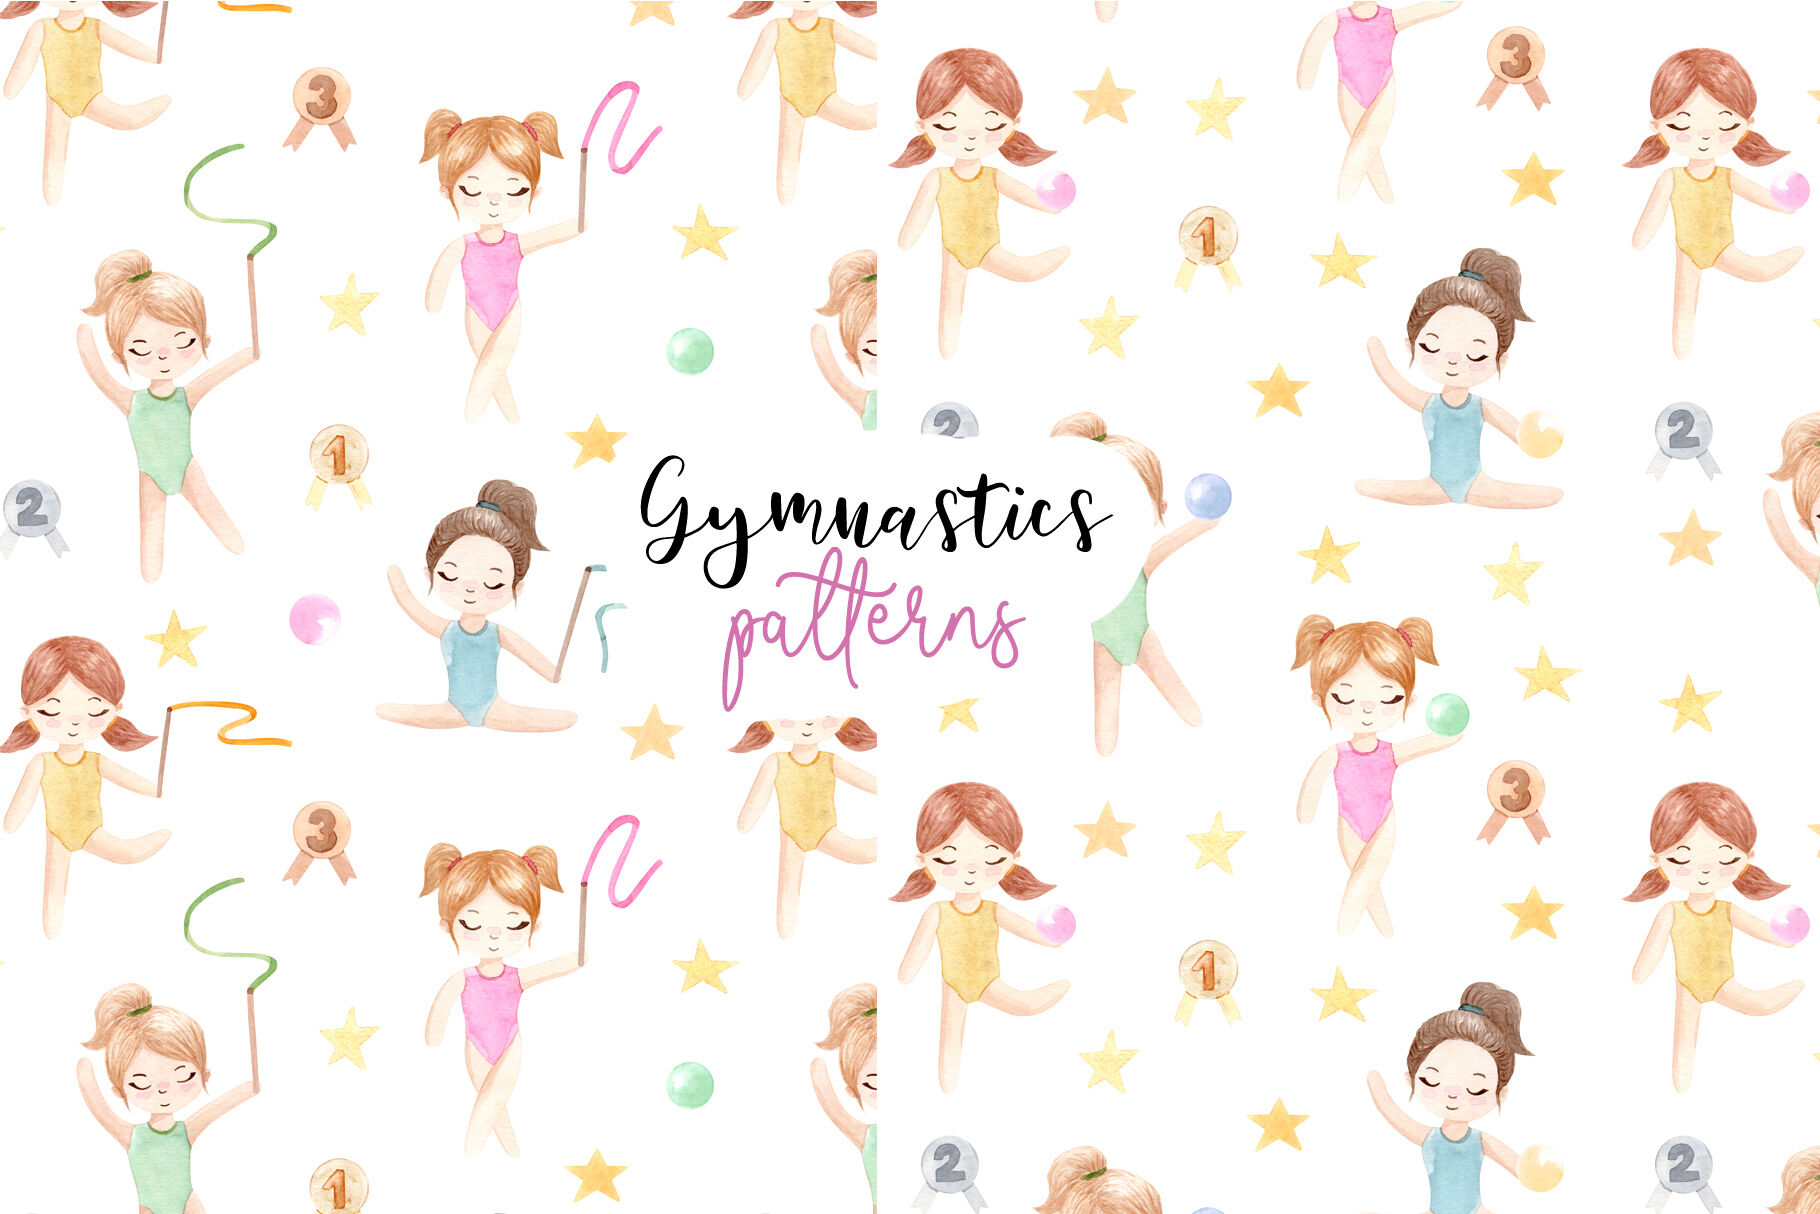 Watercolor Gymnastic Girls Patterns And Cliparts By Slastick